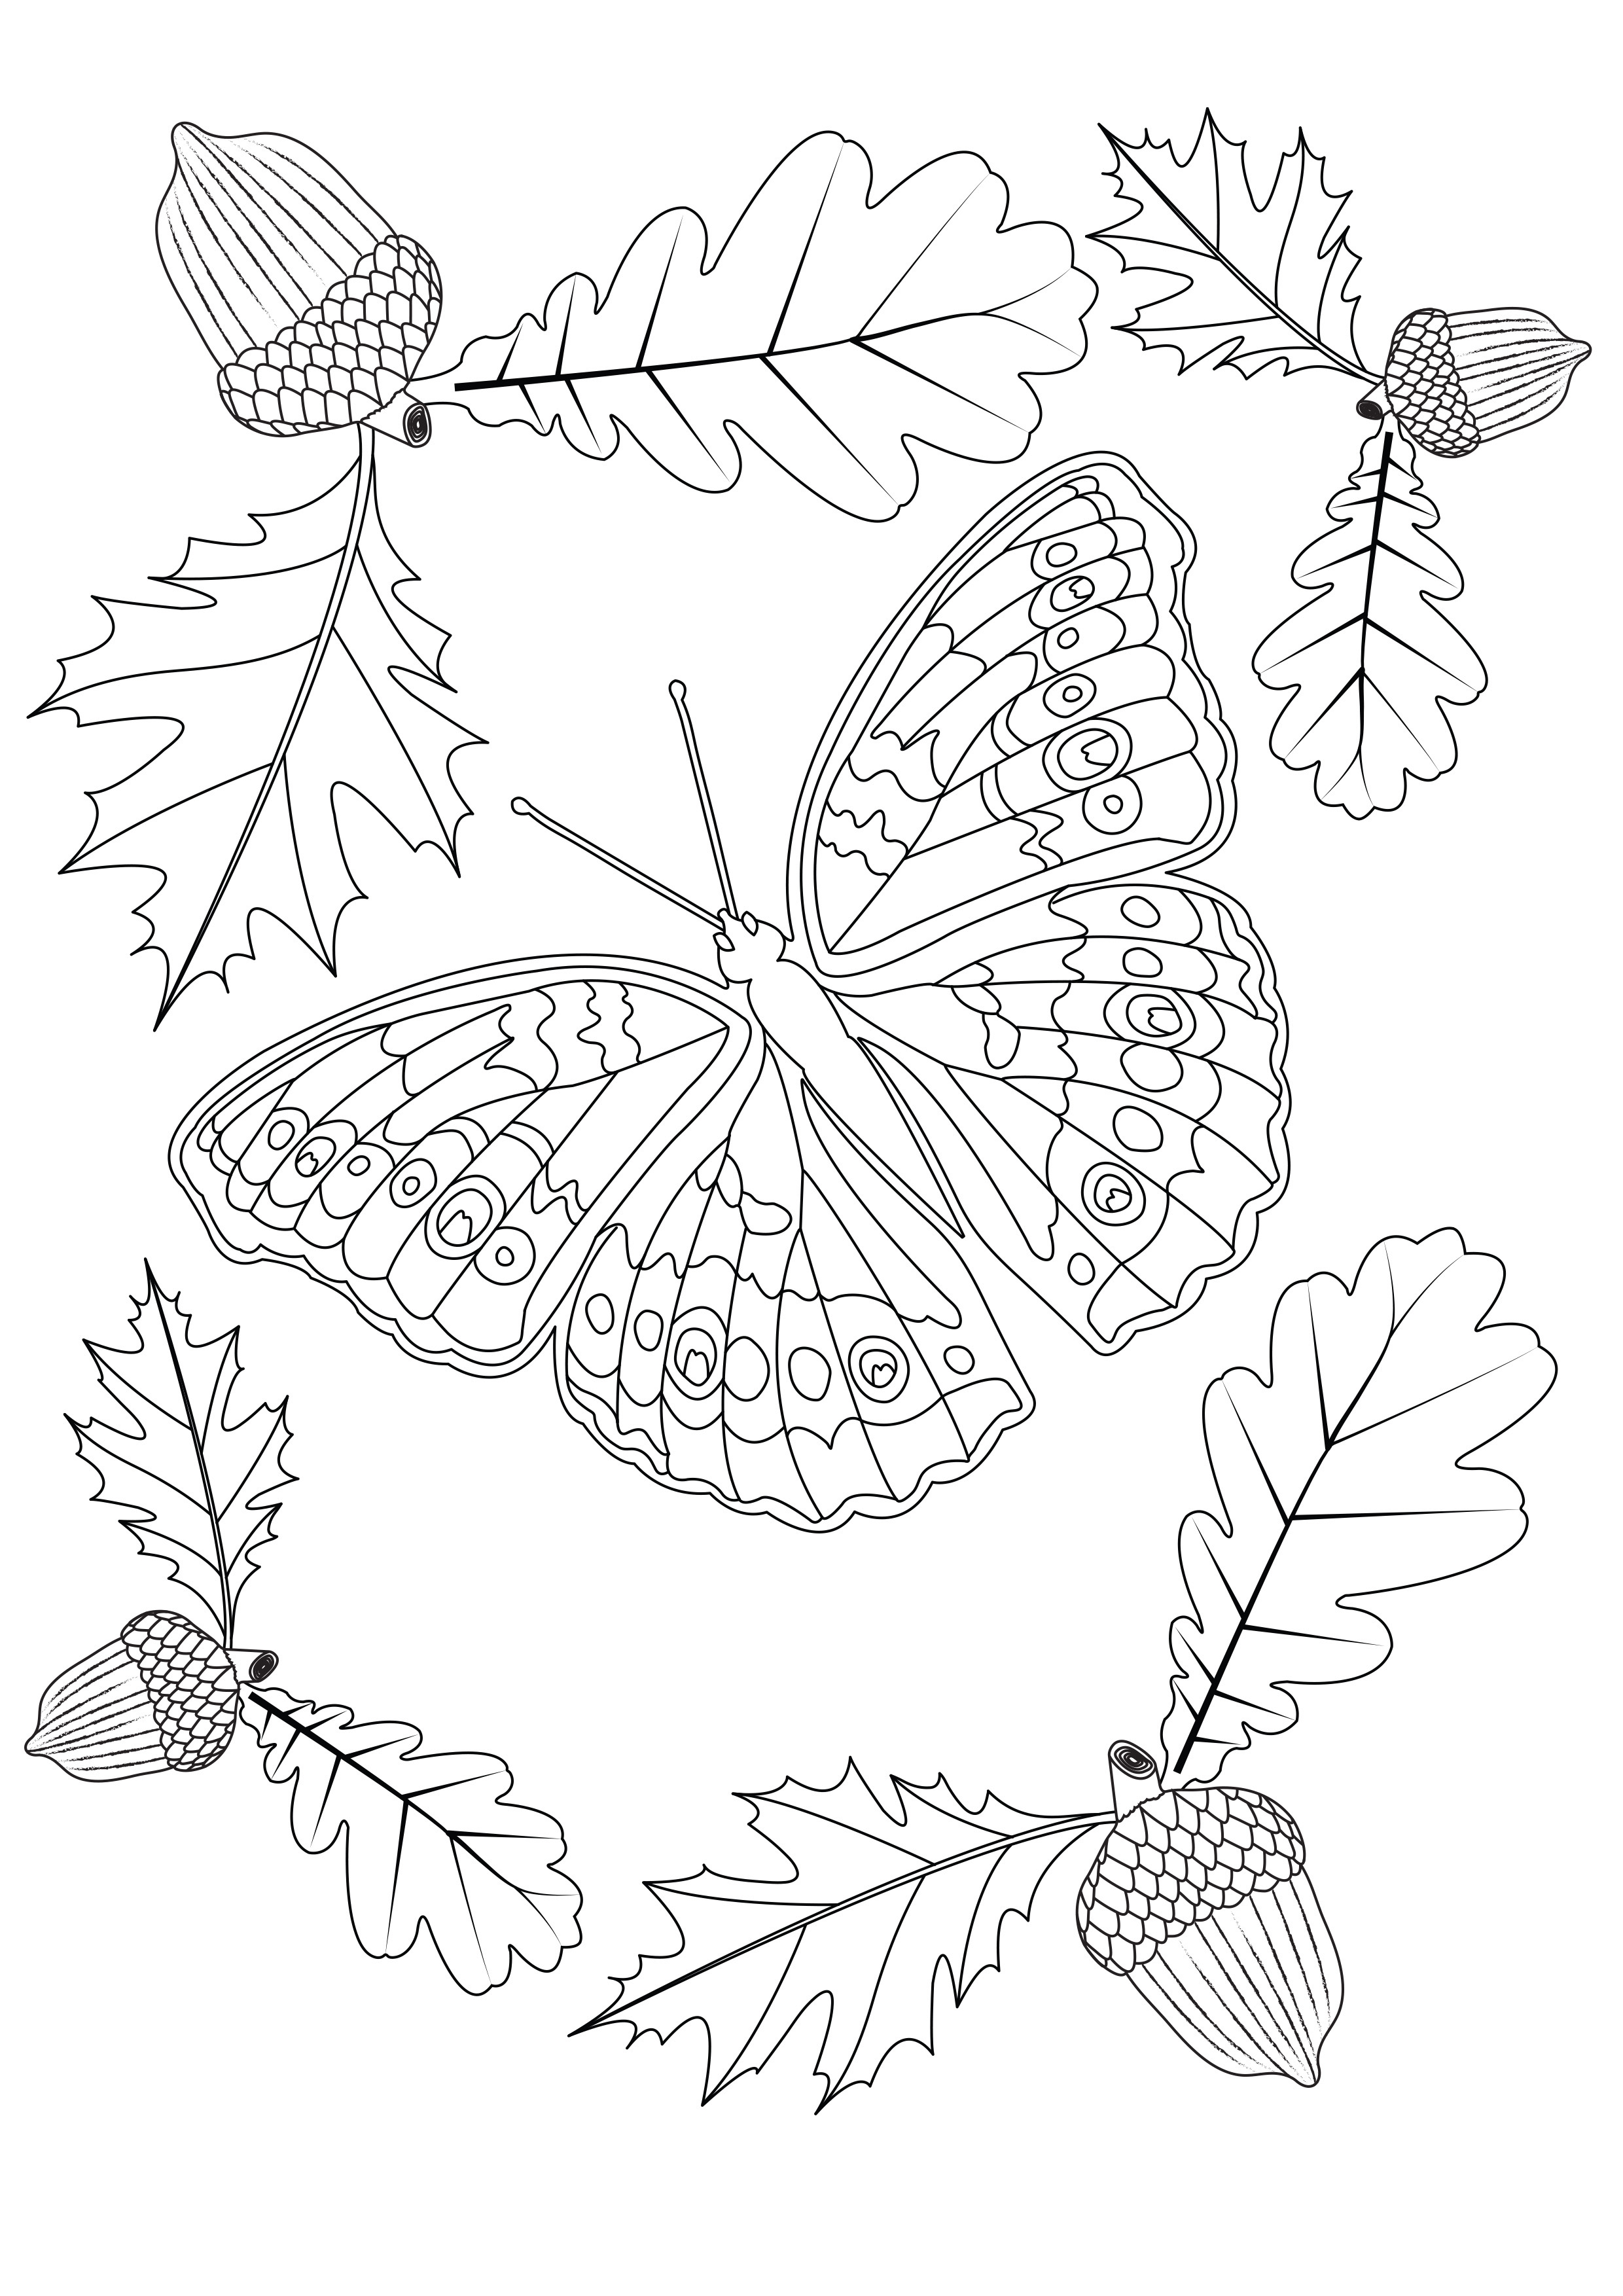 Autumn Butterfly Butterflies Amp Insects Adult Coloring Pages